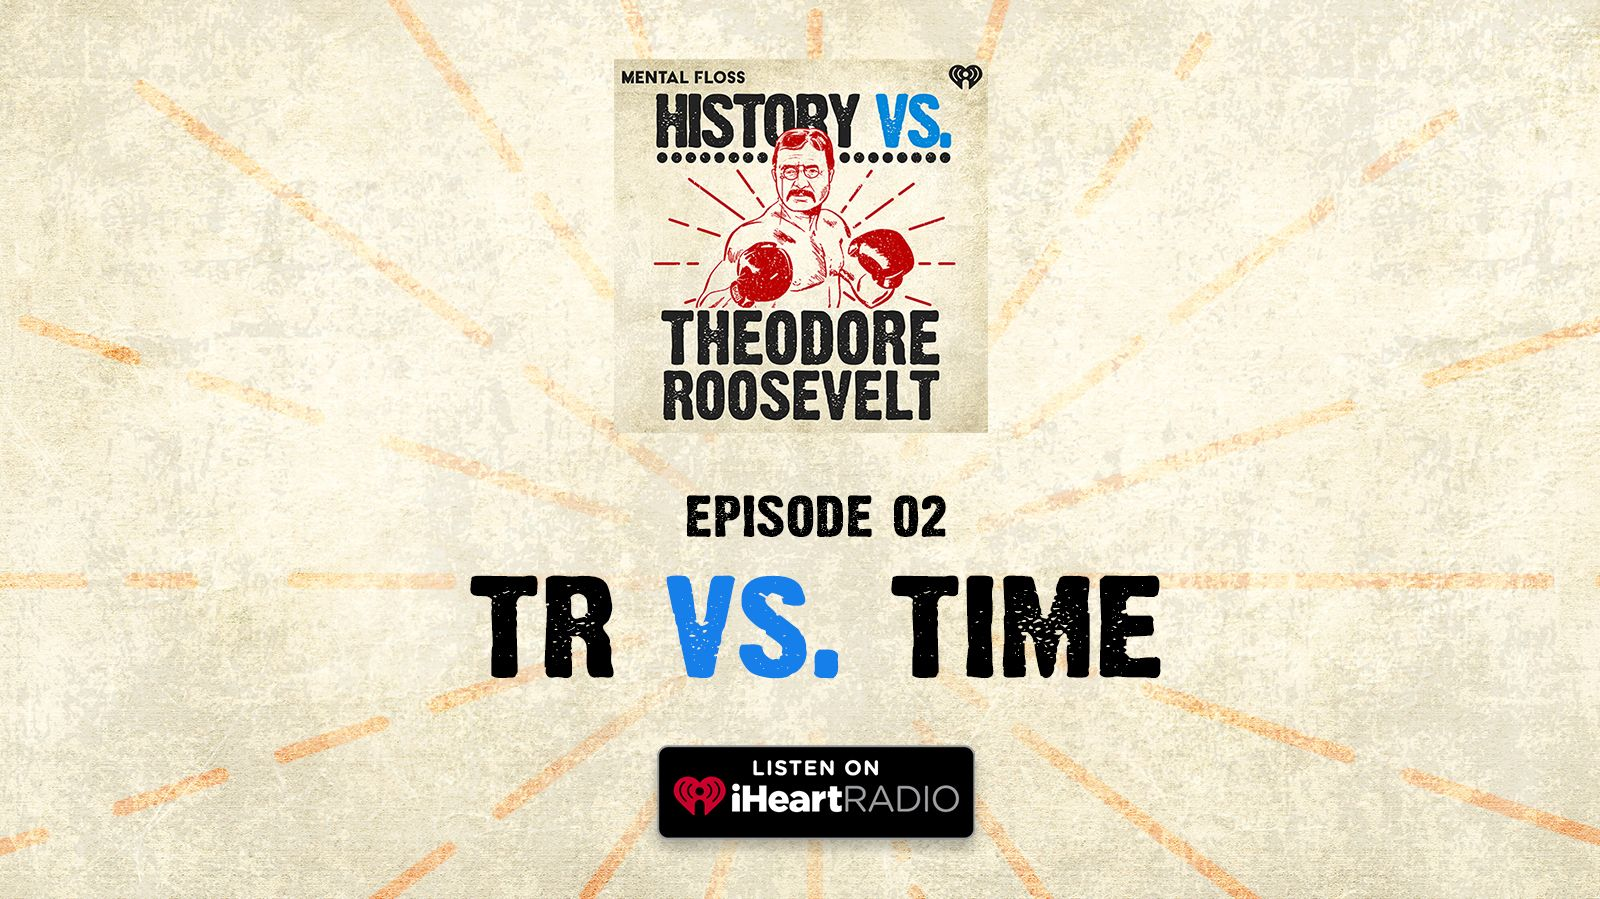 History Vs. Episode 2: Theodore Roosevelt Vs. Time